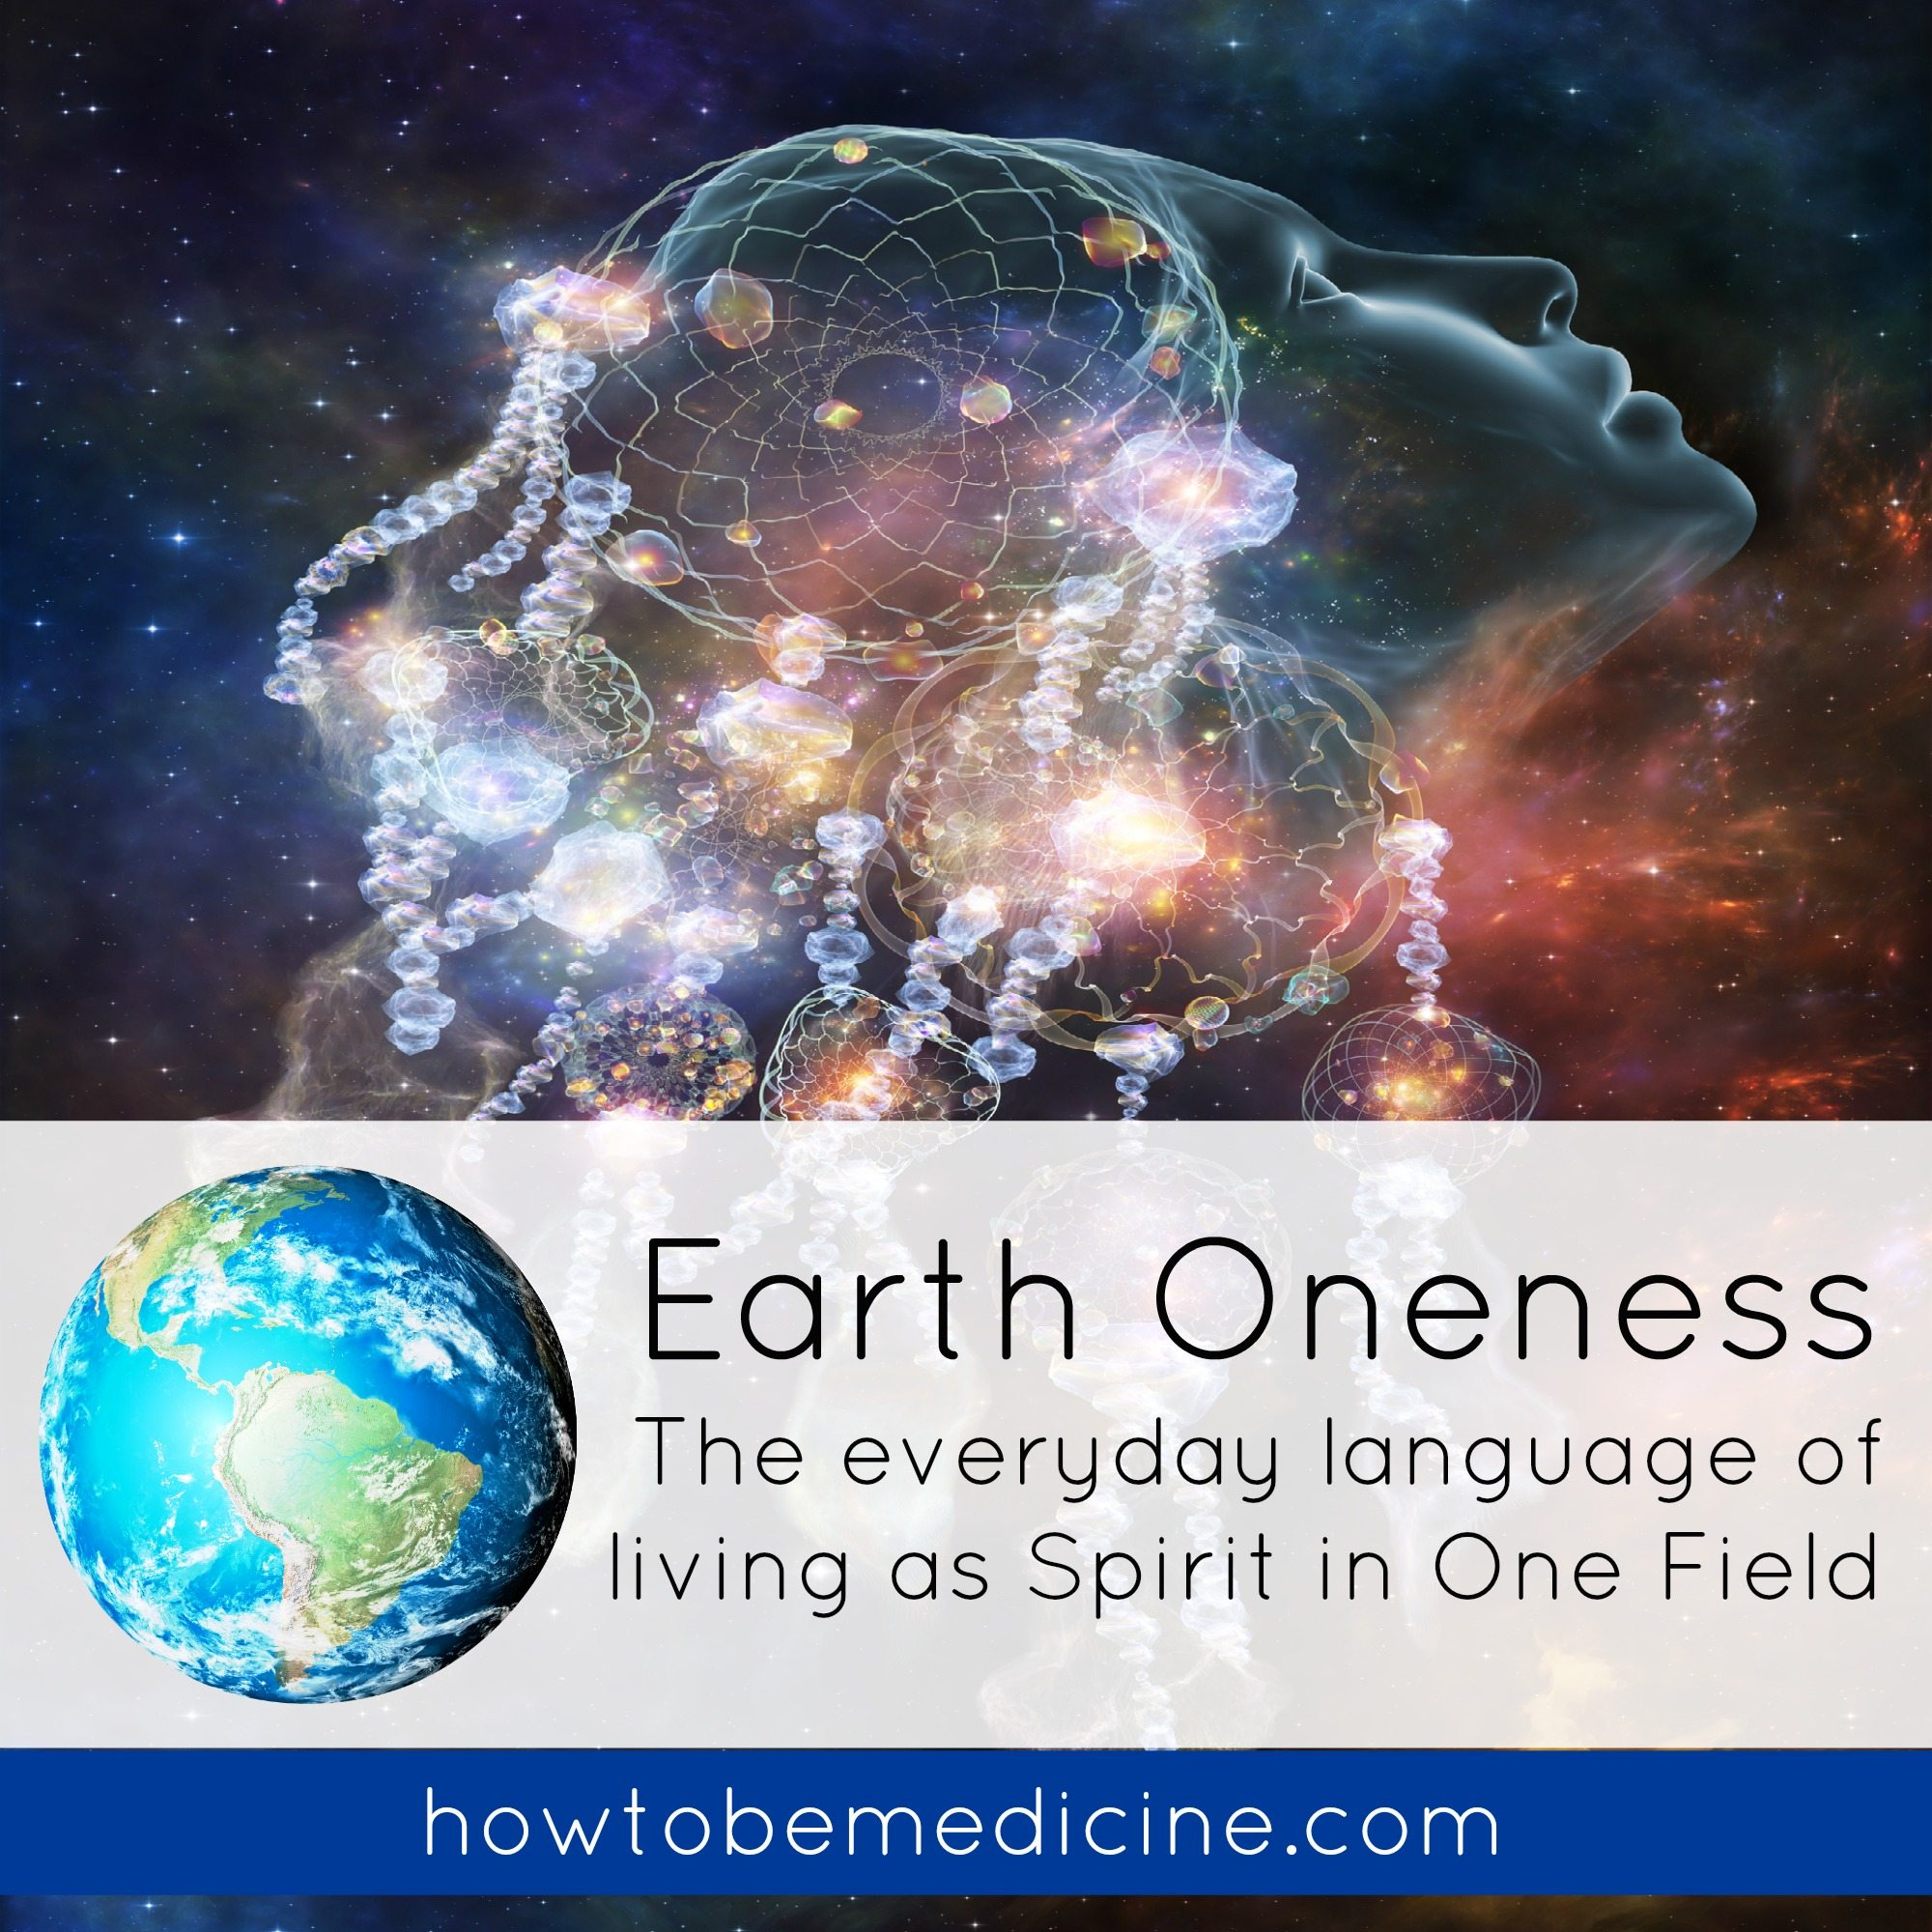 Earth Oneness